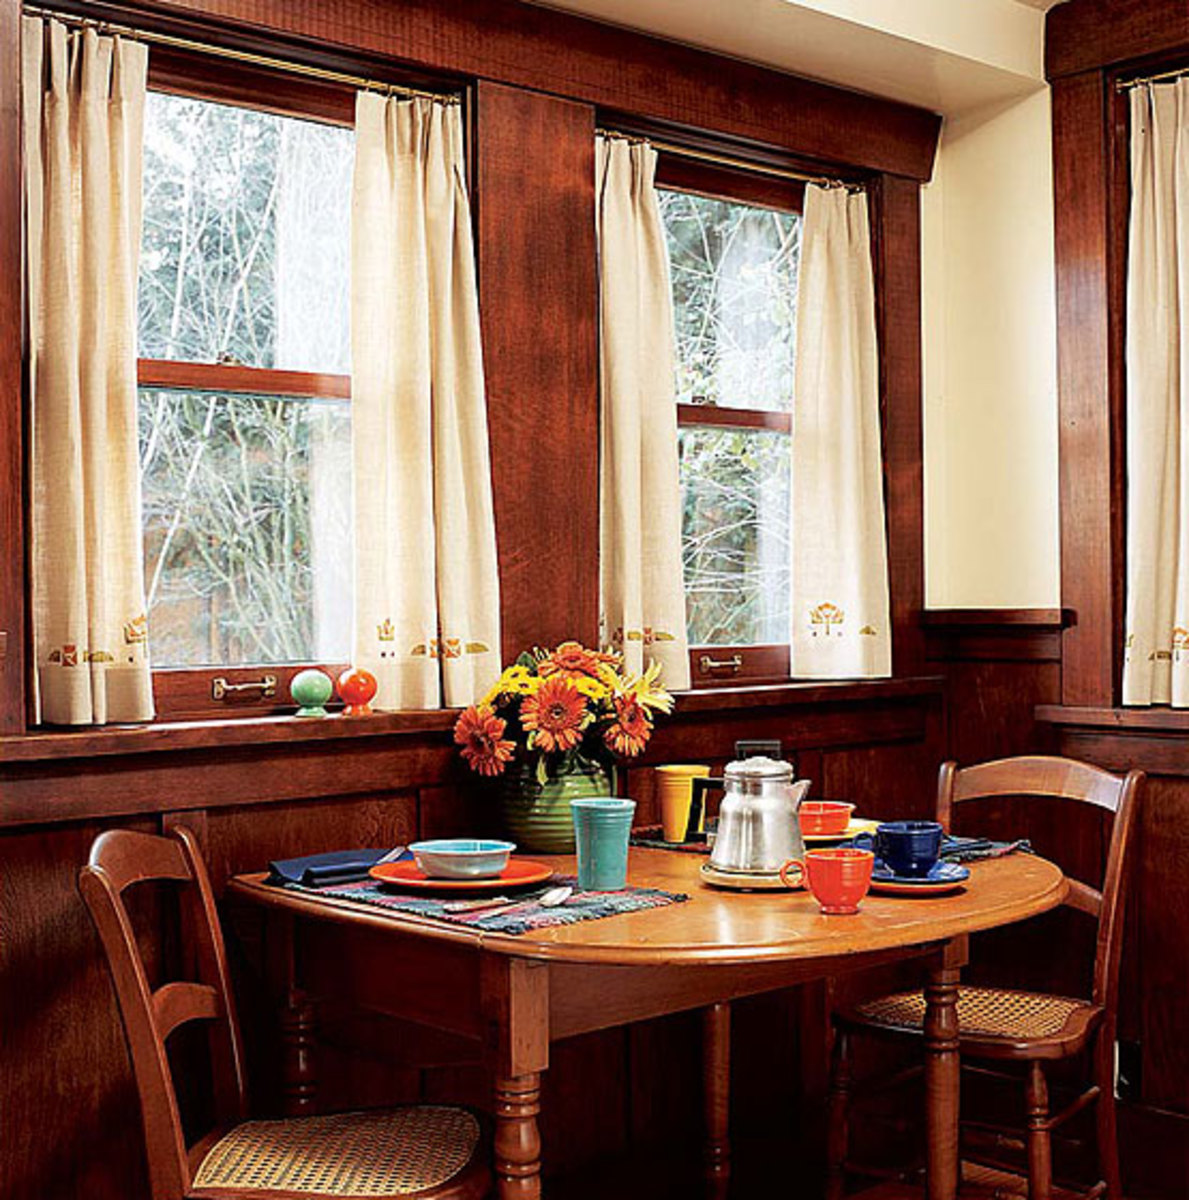 Breakfast Room In A 1916 Seattle Bungalow Simplicity ReignsPhoto By William Wright